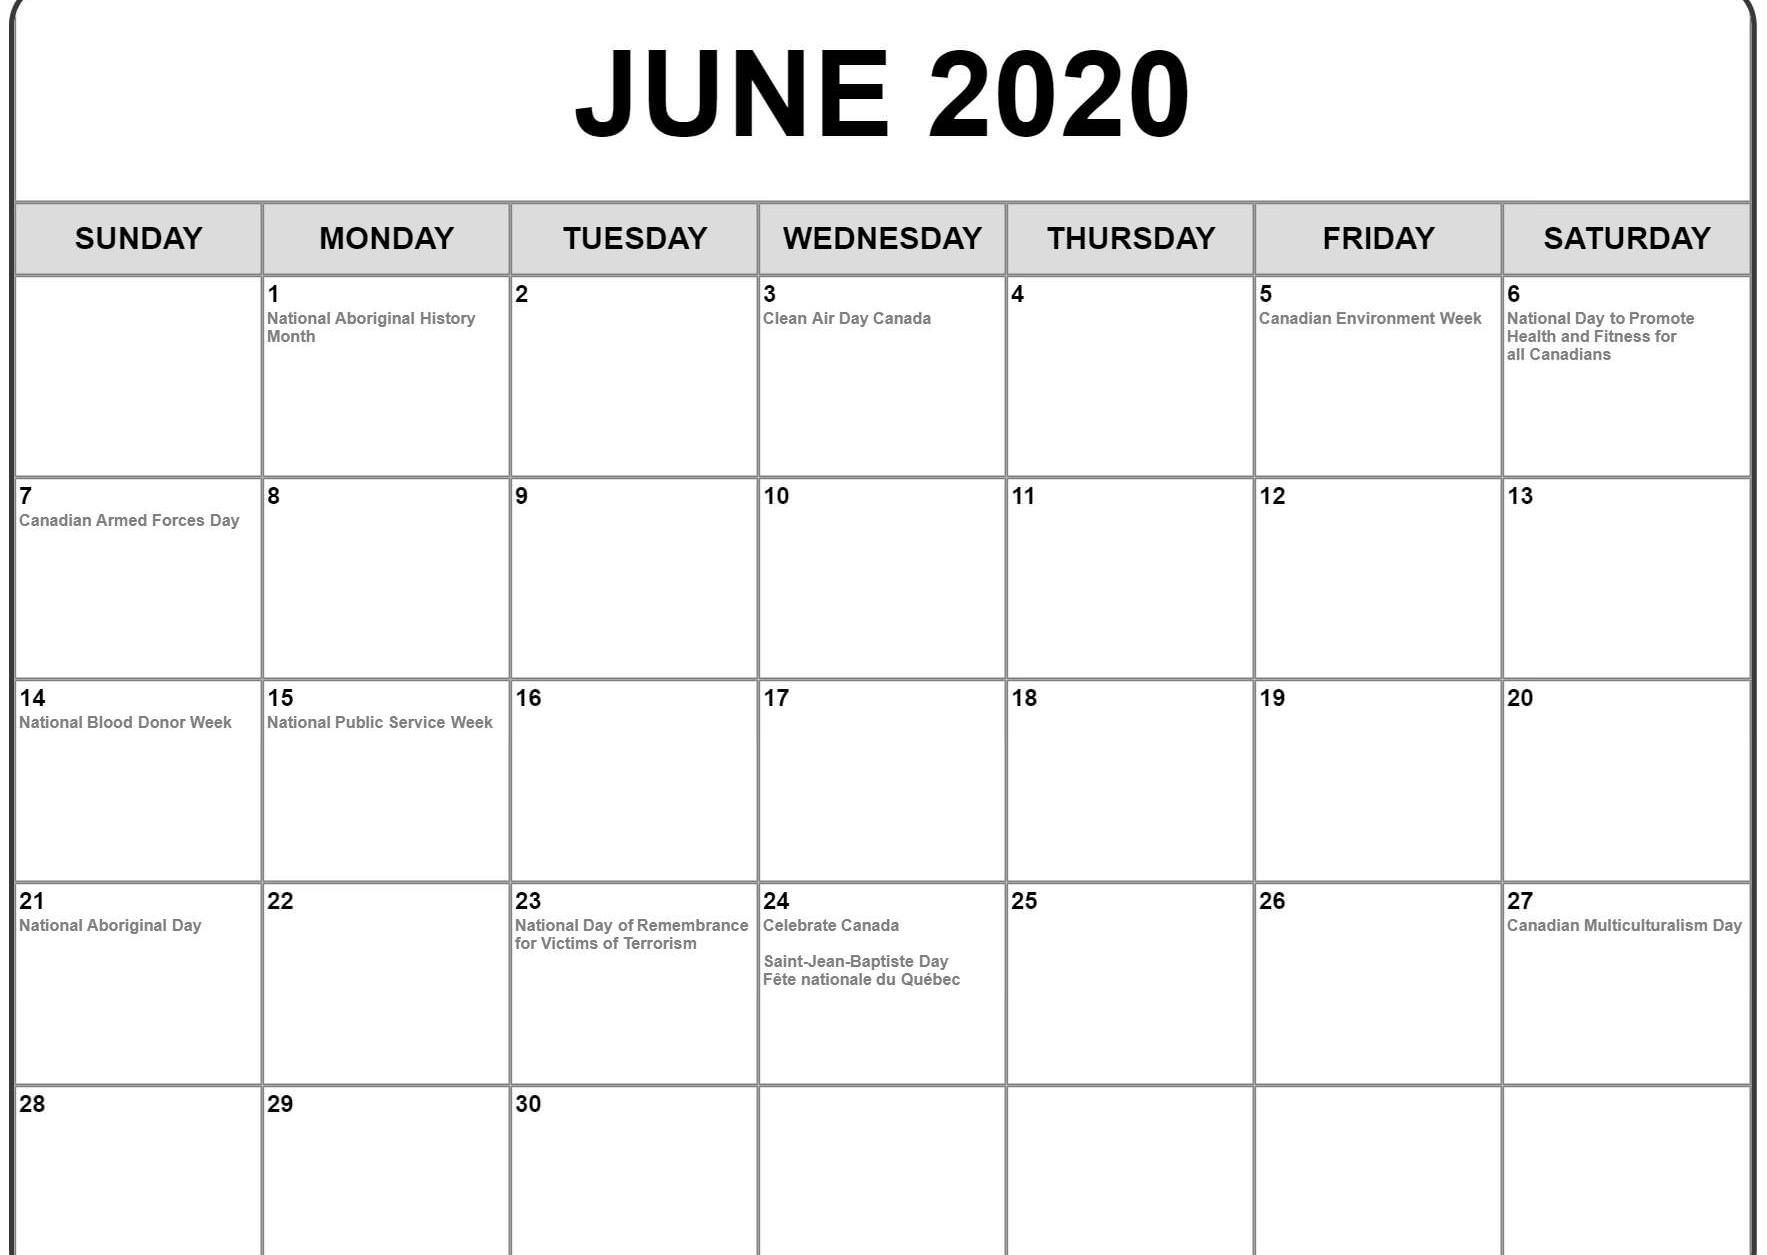 June 2020 Calendar Wallpapers   Top June 2020 Calendar 1767x1255